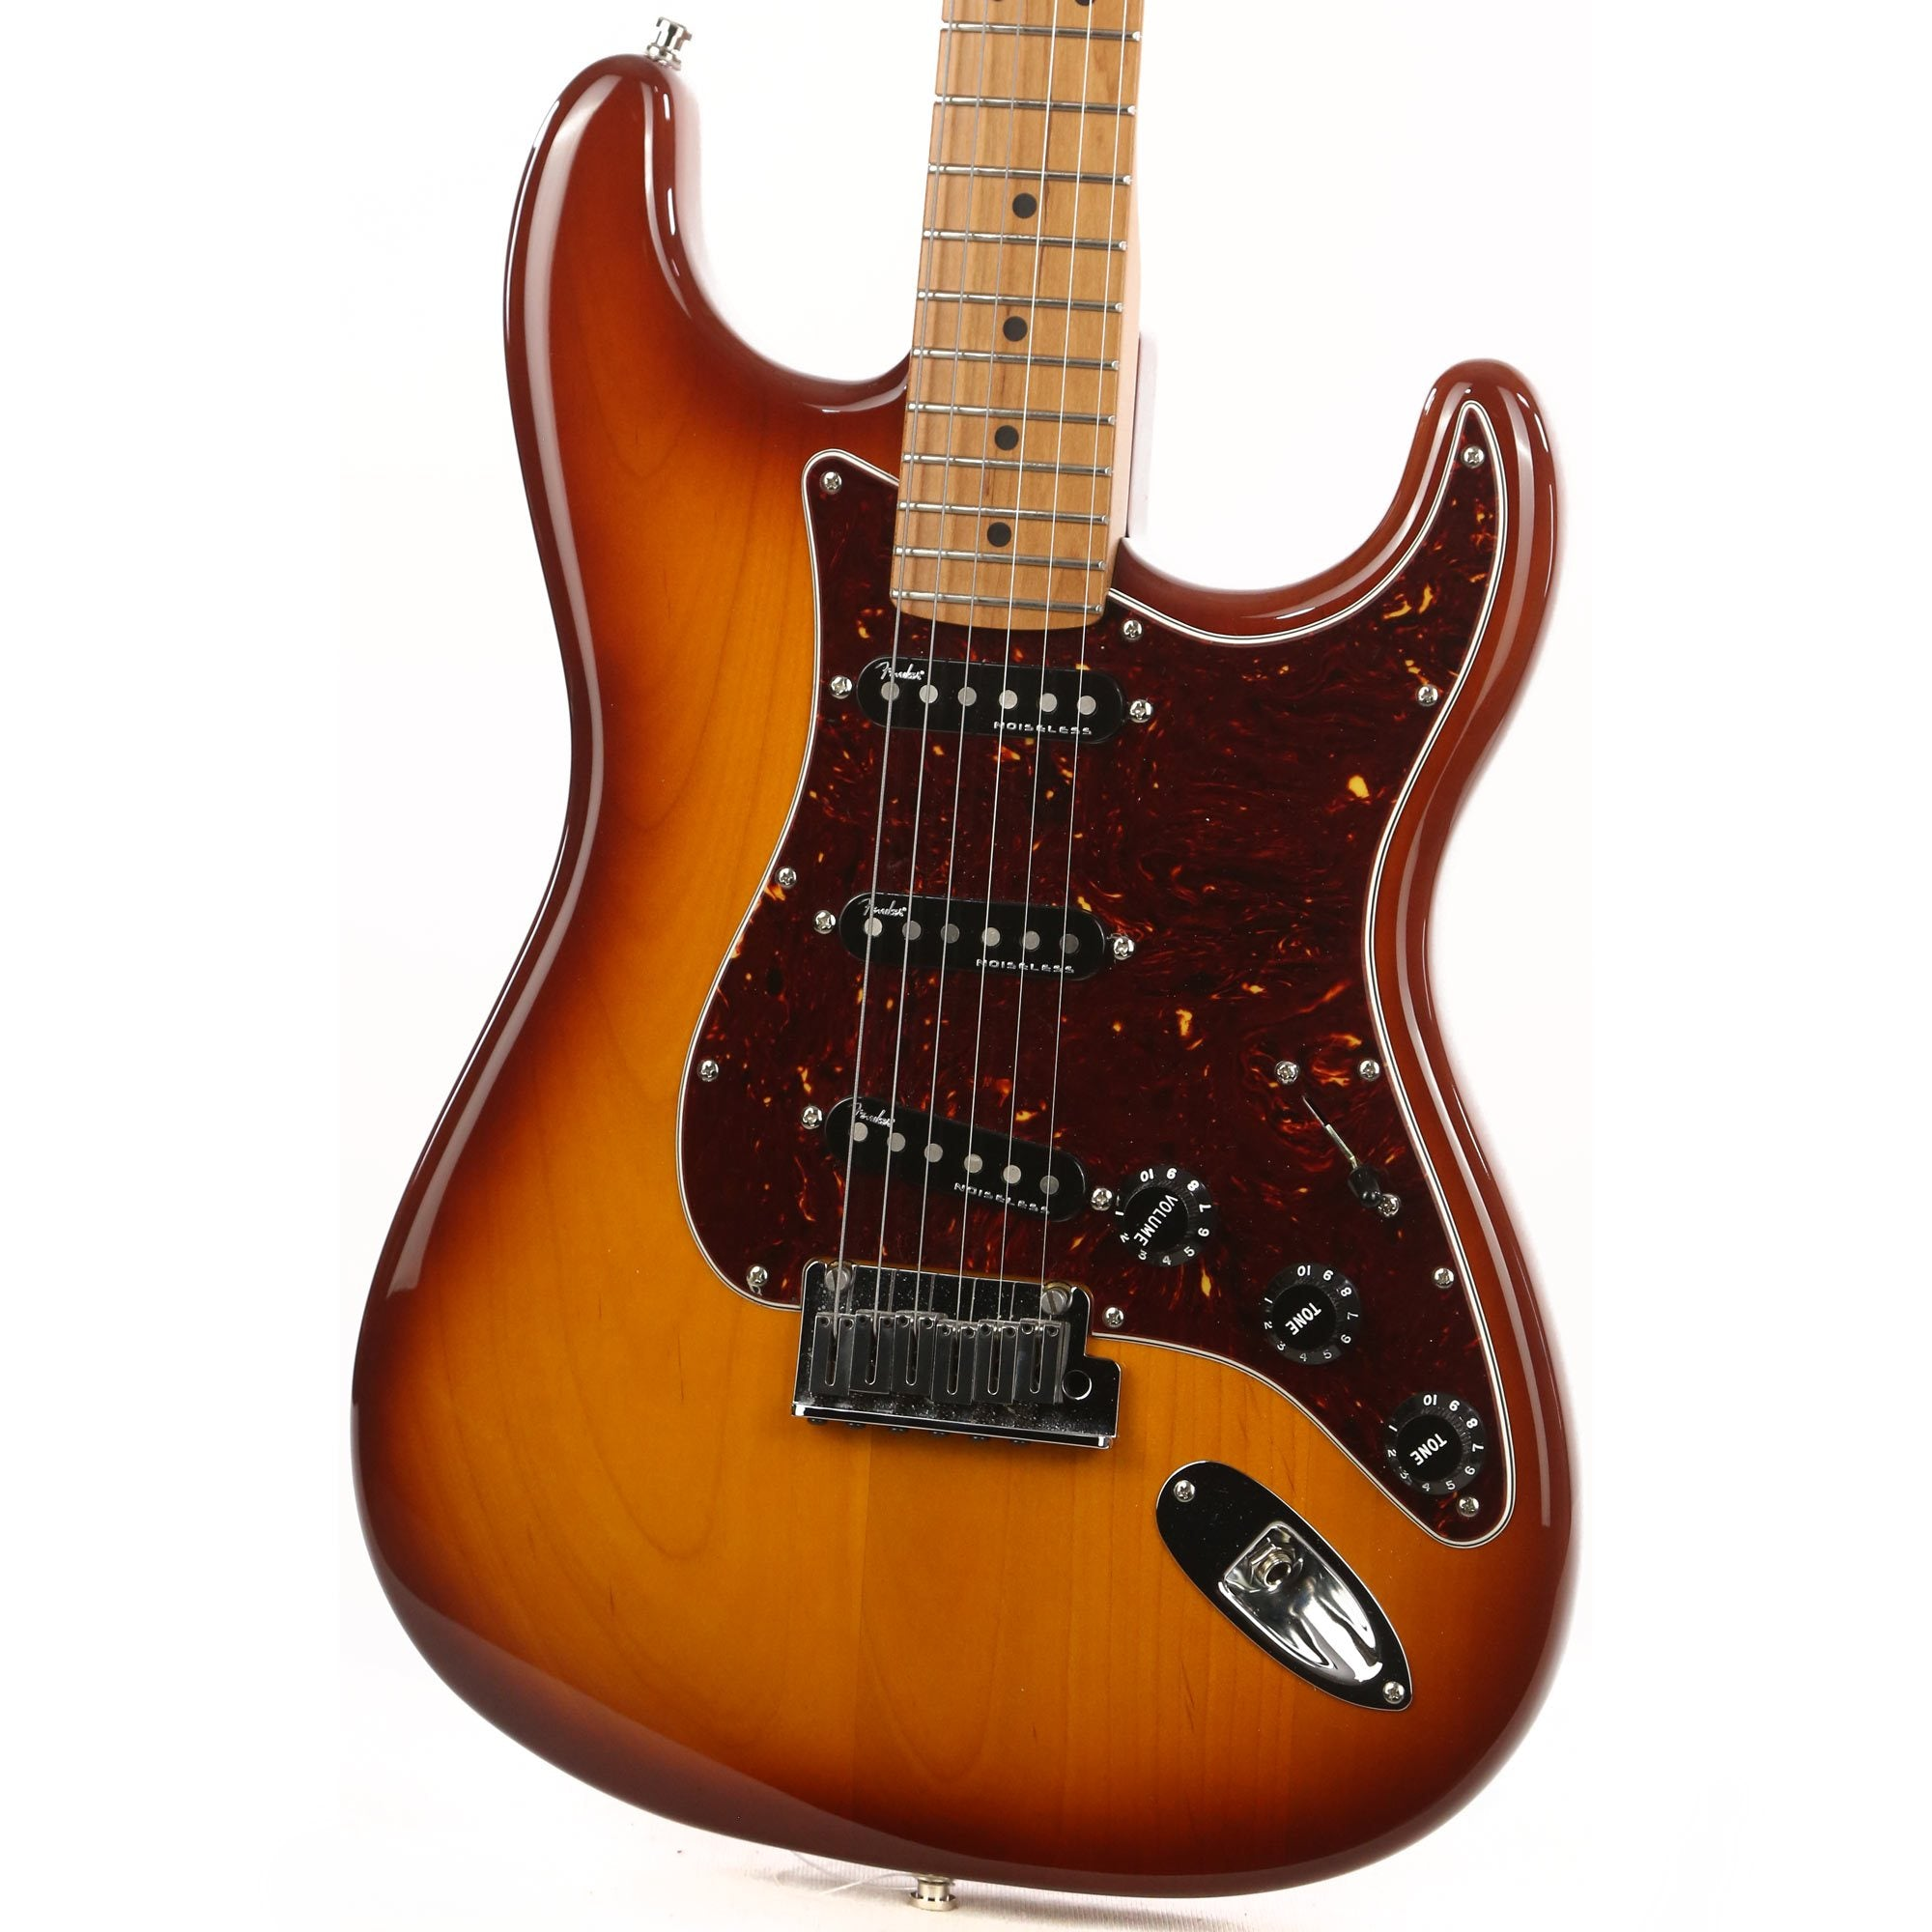 Fender Mod Shop Stratocaster Tobacco Burst With Roasted Maple Neck 201 The Music Zoo The official instagram account of the fender custom shop. fender